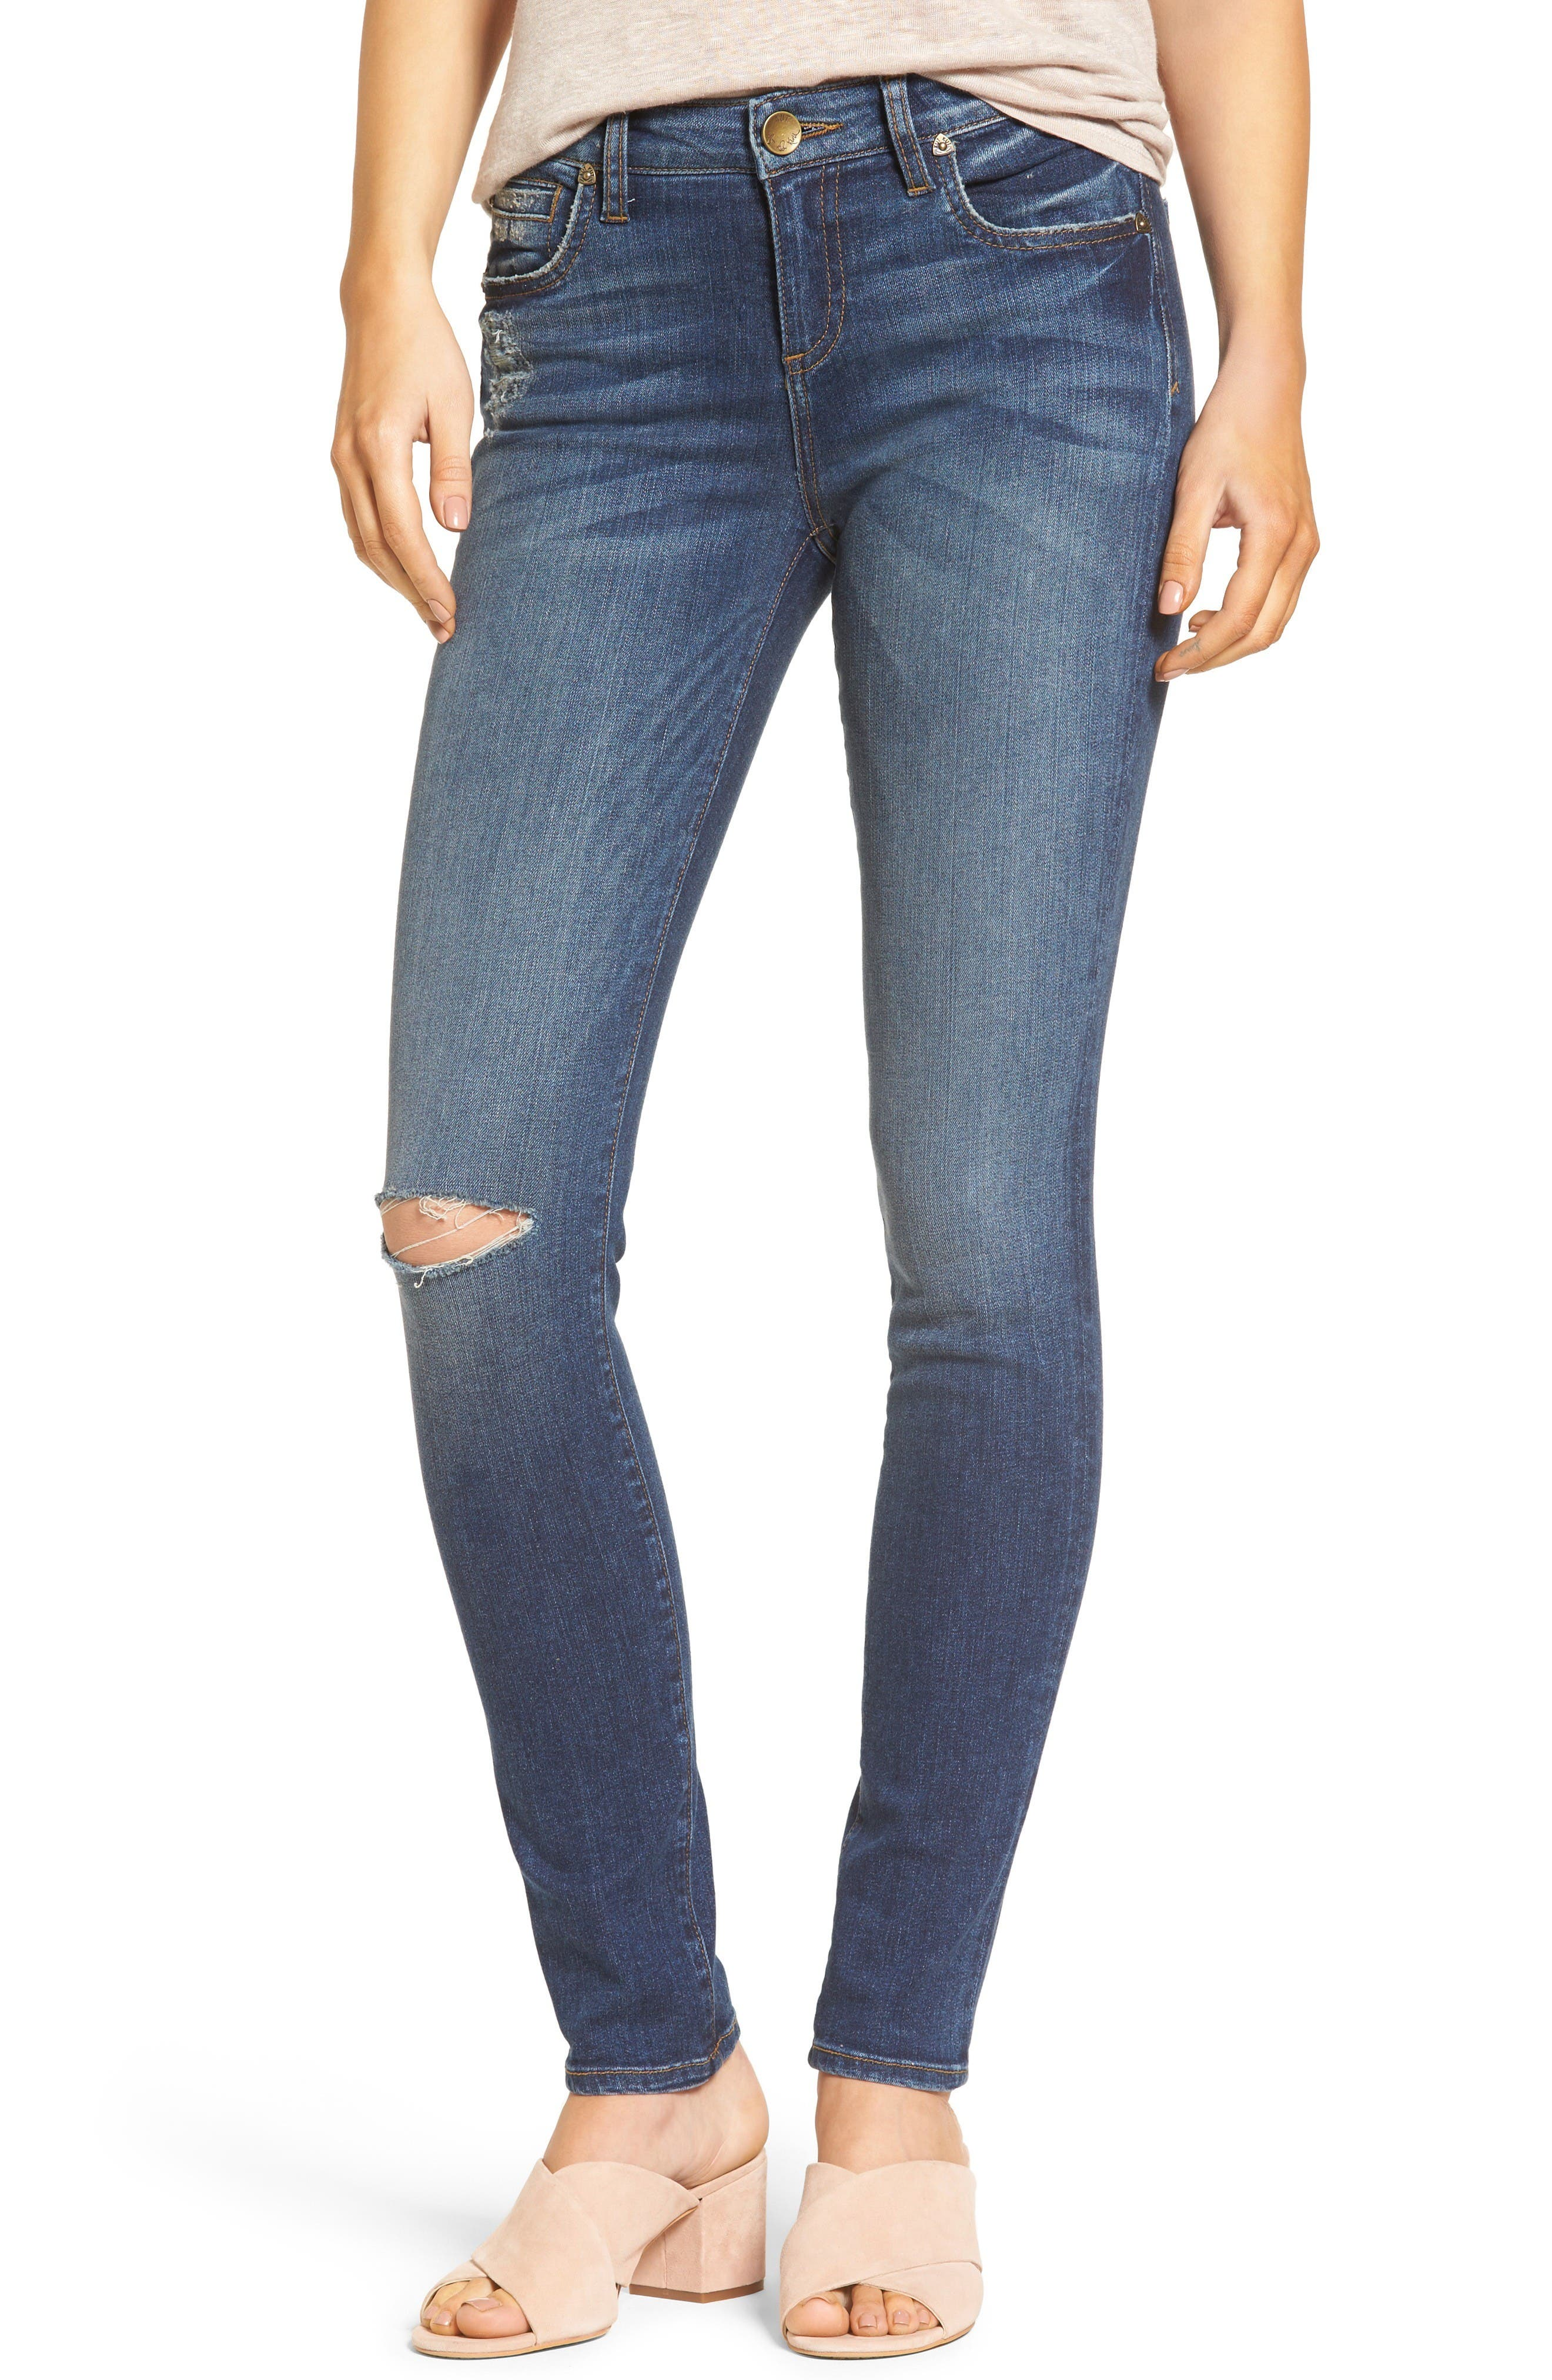 Alternate Image 1 Selected - KUT from the Kloth Diana Ripped Stretch Skinny Jeans (Valorous) (Regular & Petite)